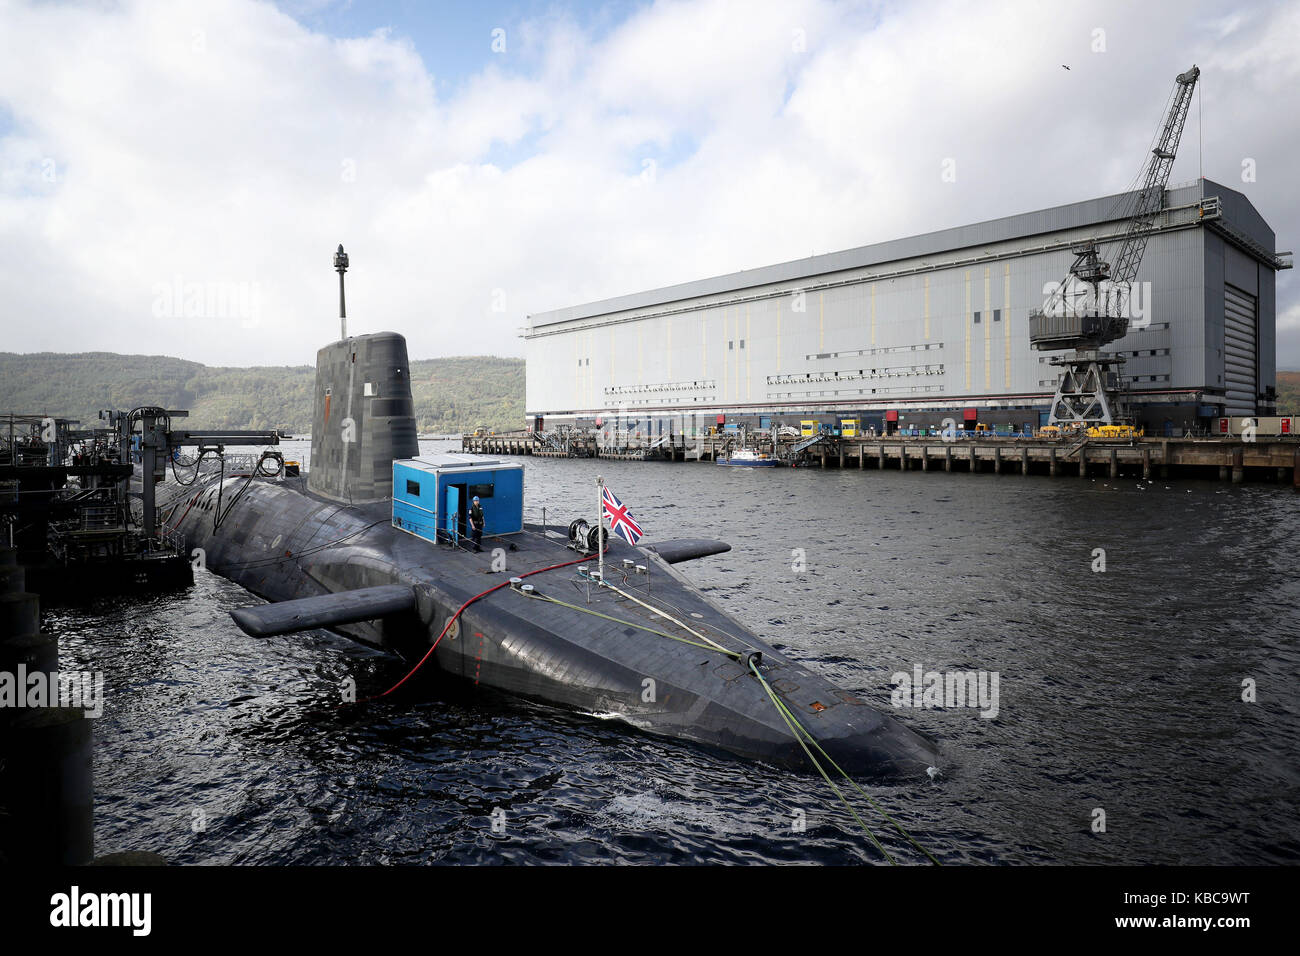 A general view of the Vanguard-class nuclear deterrent submarine HMS Vengeance at HM Naval Base Clyde, Faslane. Stock Photo